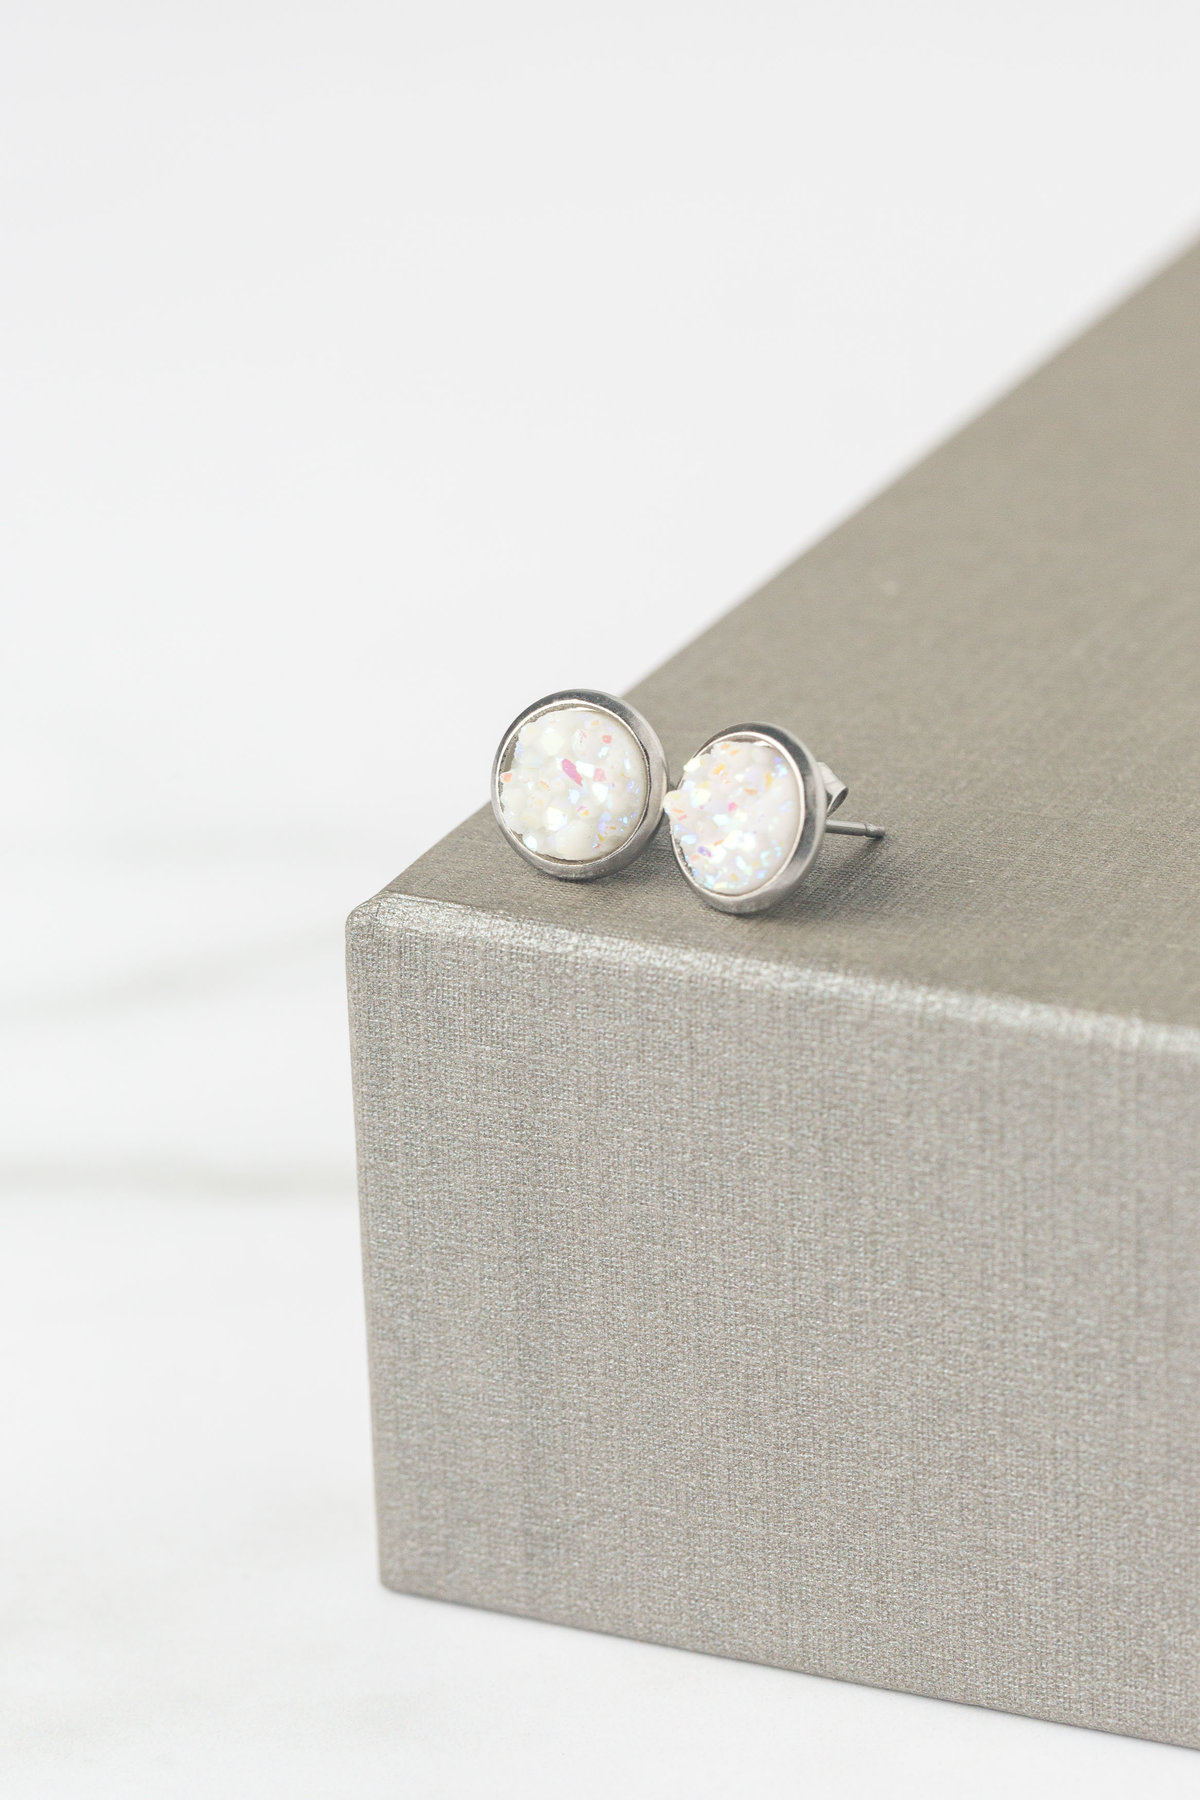 Atelier21 Co - Druzy Earrings-19